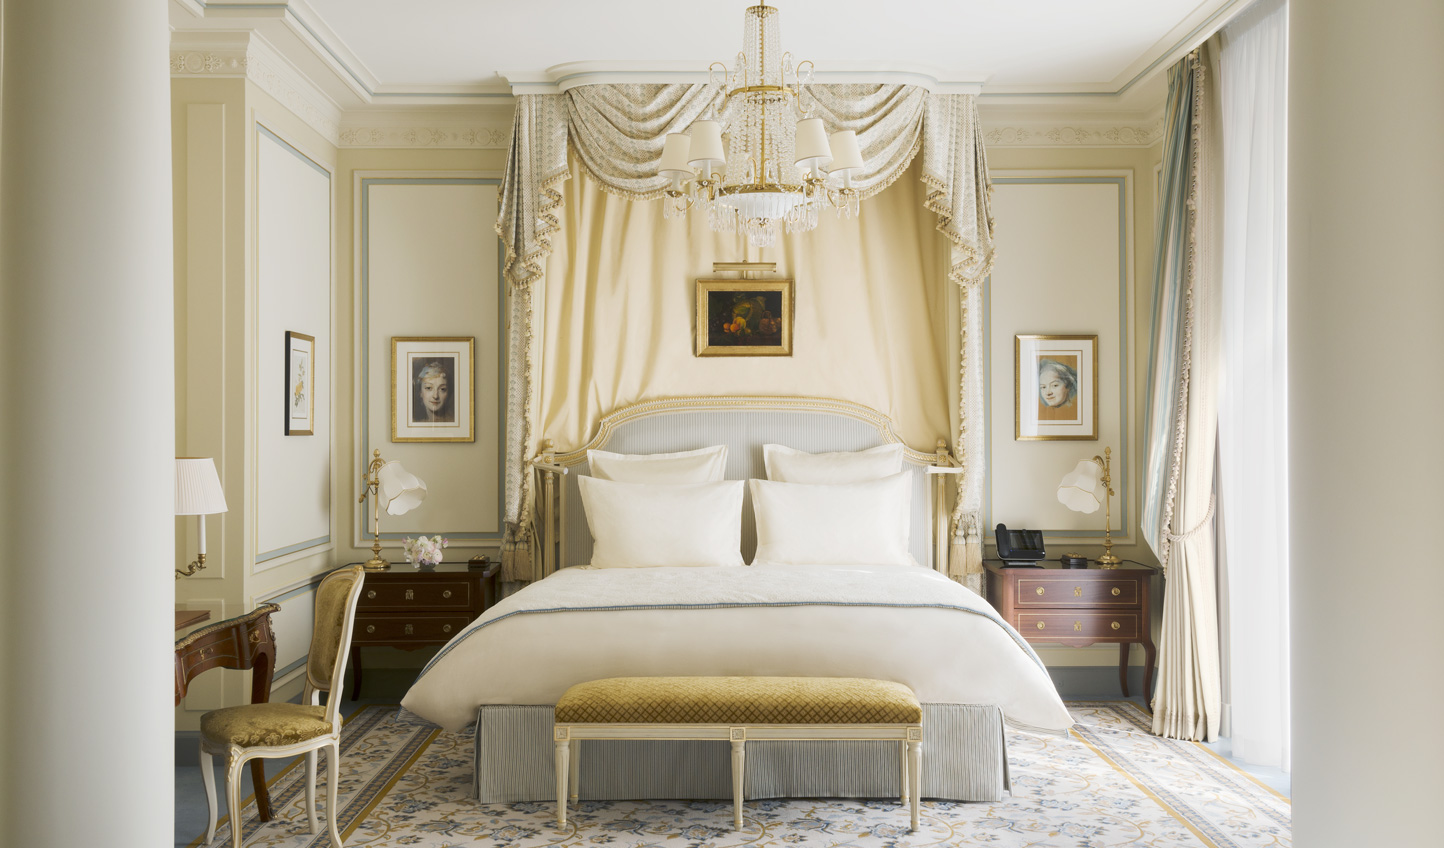 Timeless glamour will greet you in your Ritz room